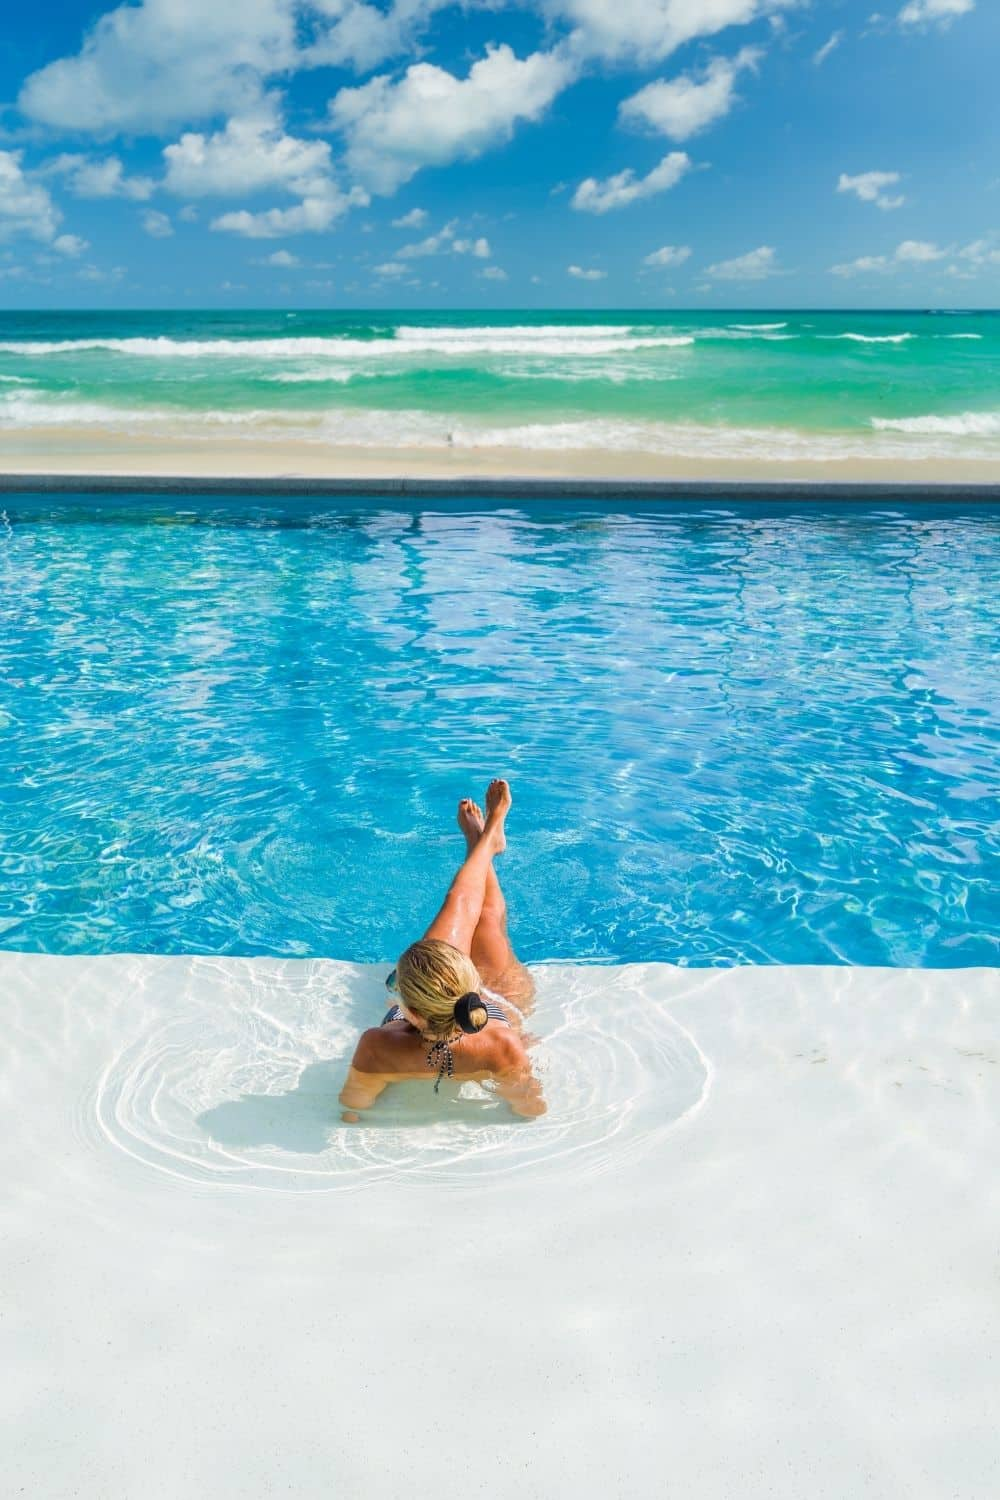 Photo of a woman lounging in a pool overlooking the ocean.